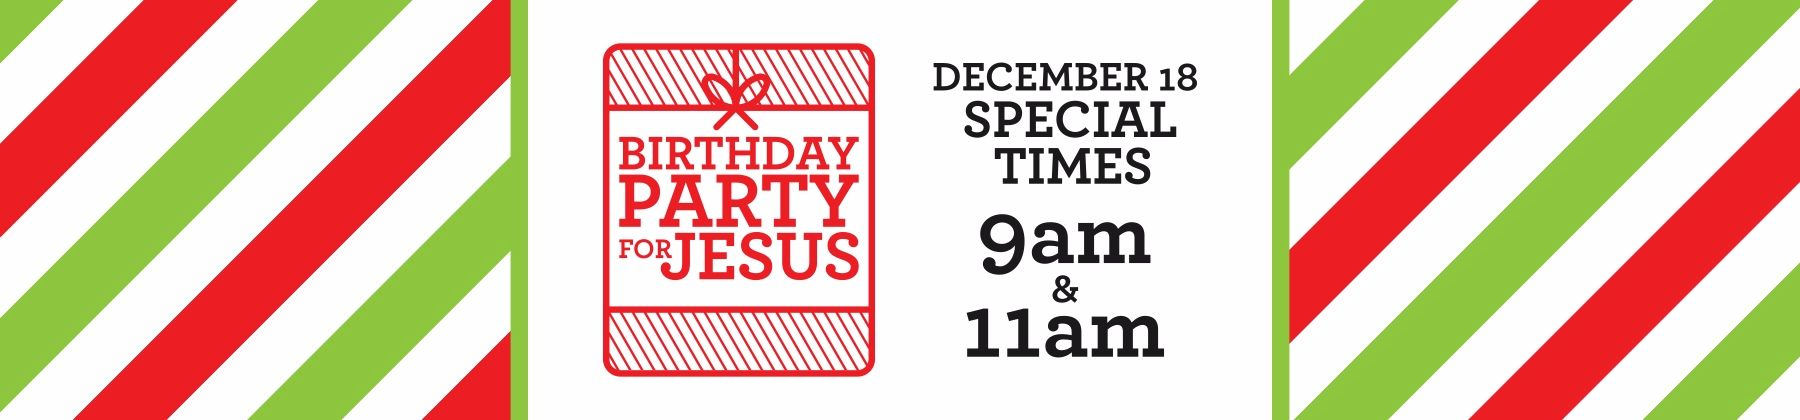 Birthday Party For Jesus 2016 Web Banner Compressed Hope Hill Church